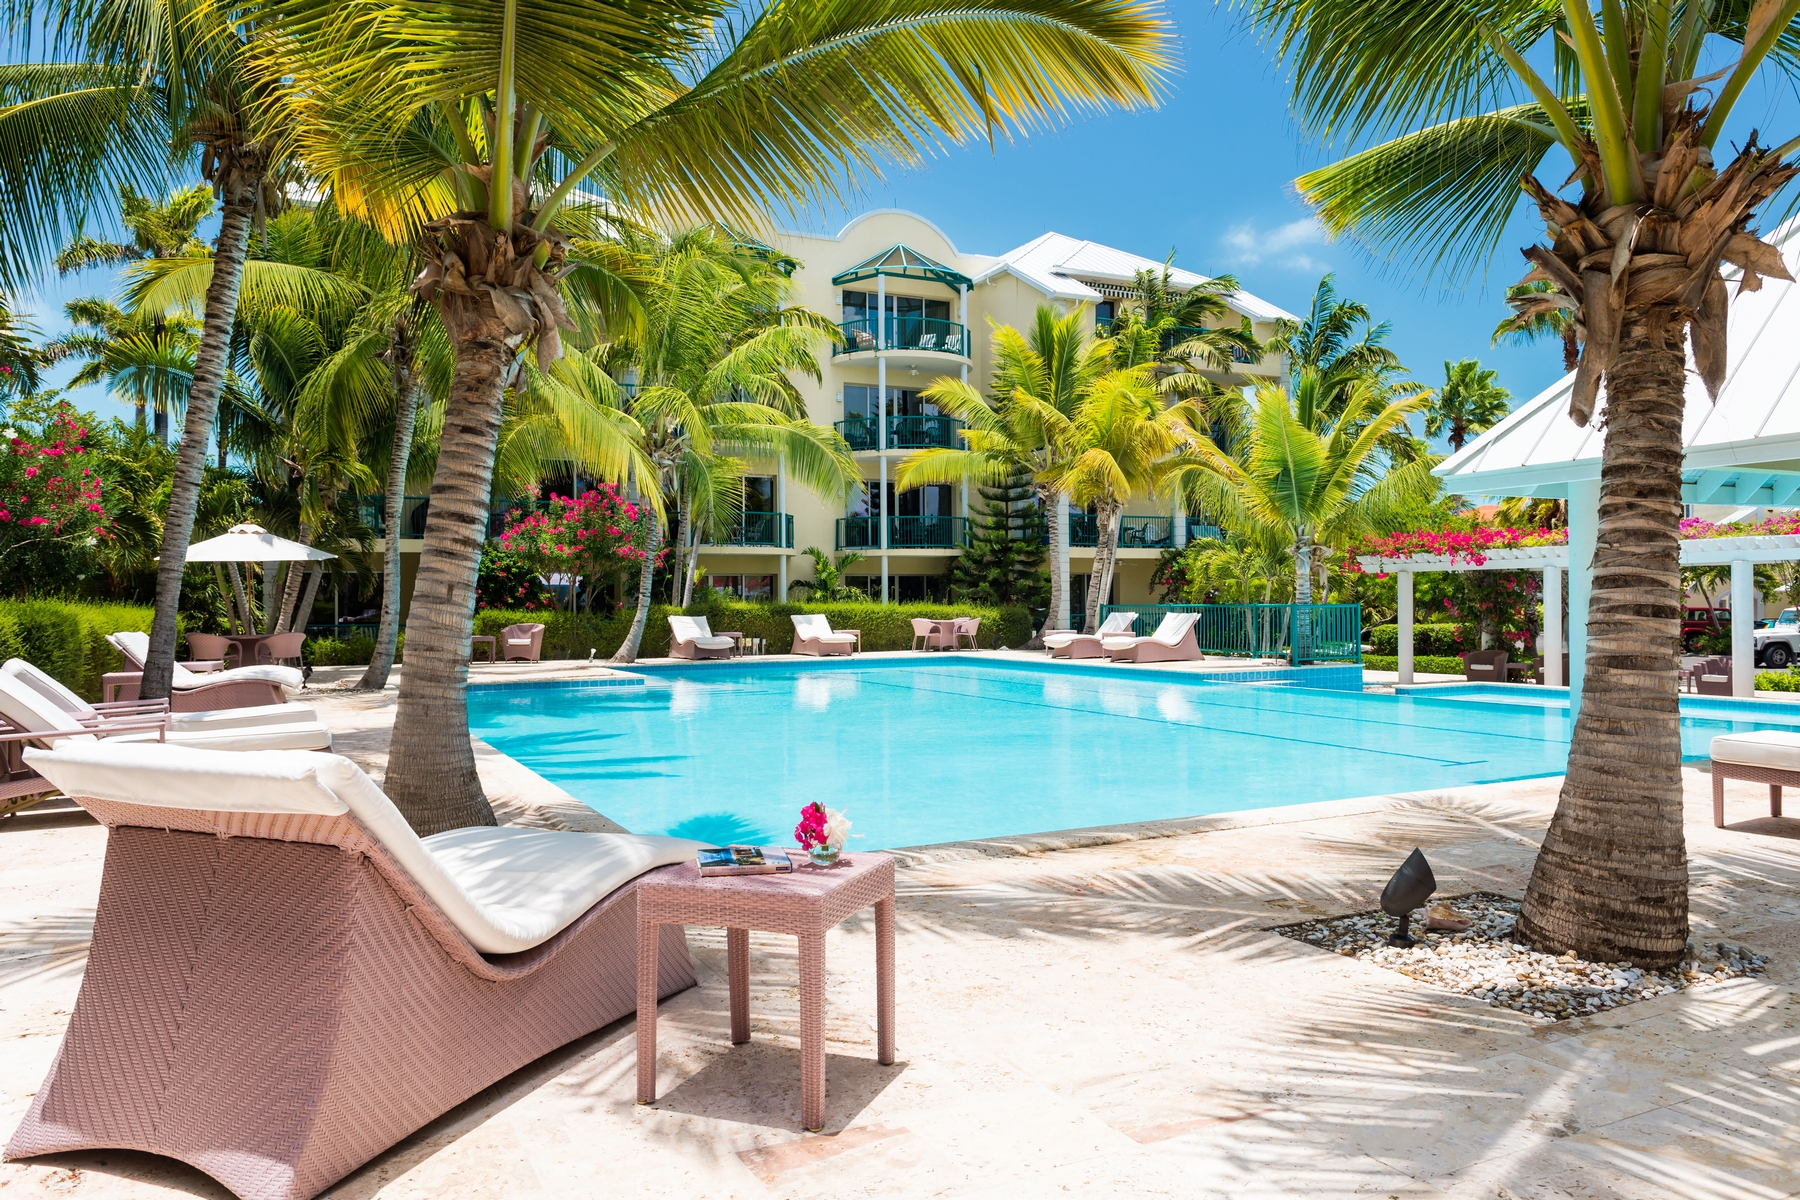 Condominium for Sale at The Yacht Club - B9 The Yacht Club, Turtle Cove, Turks And Caicos Islands